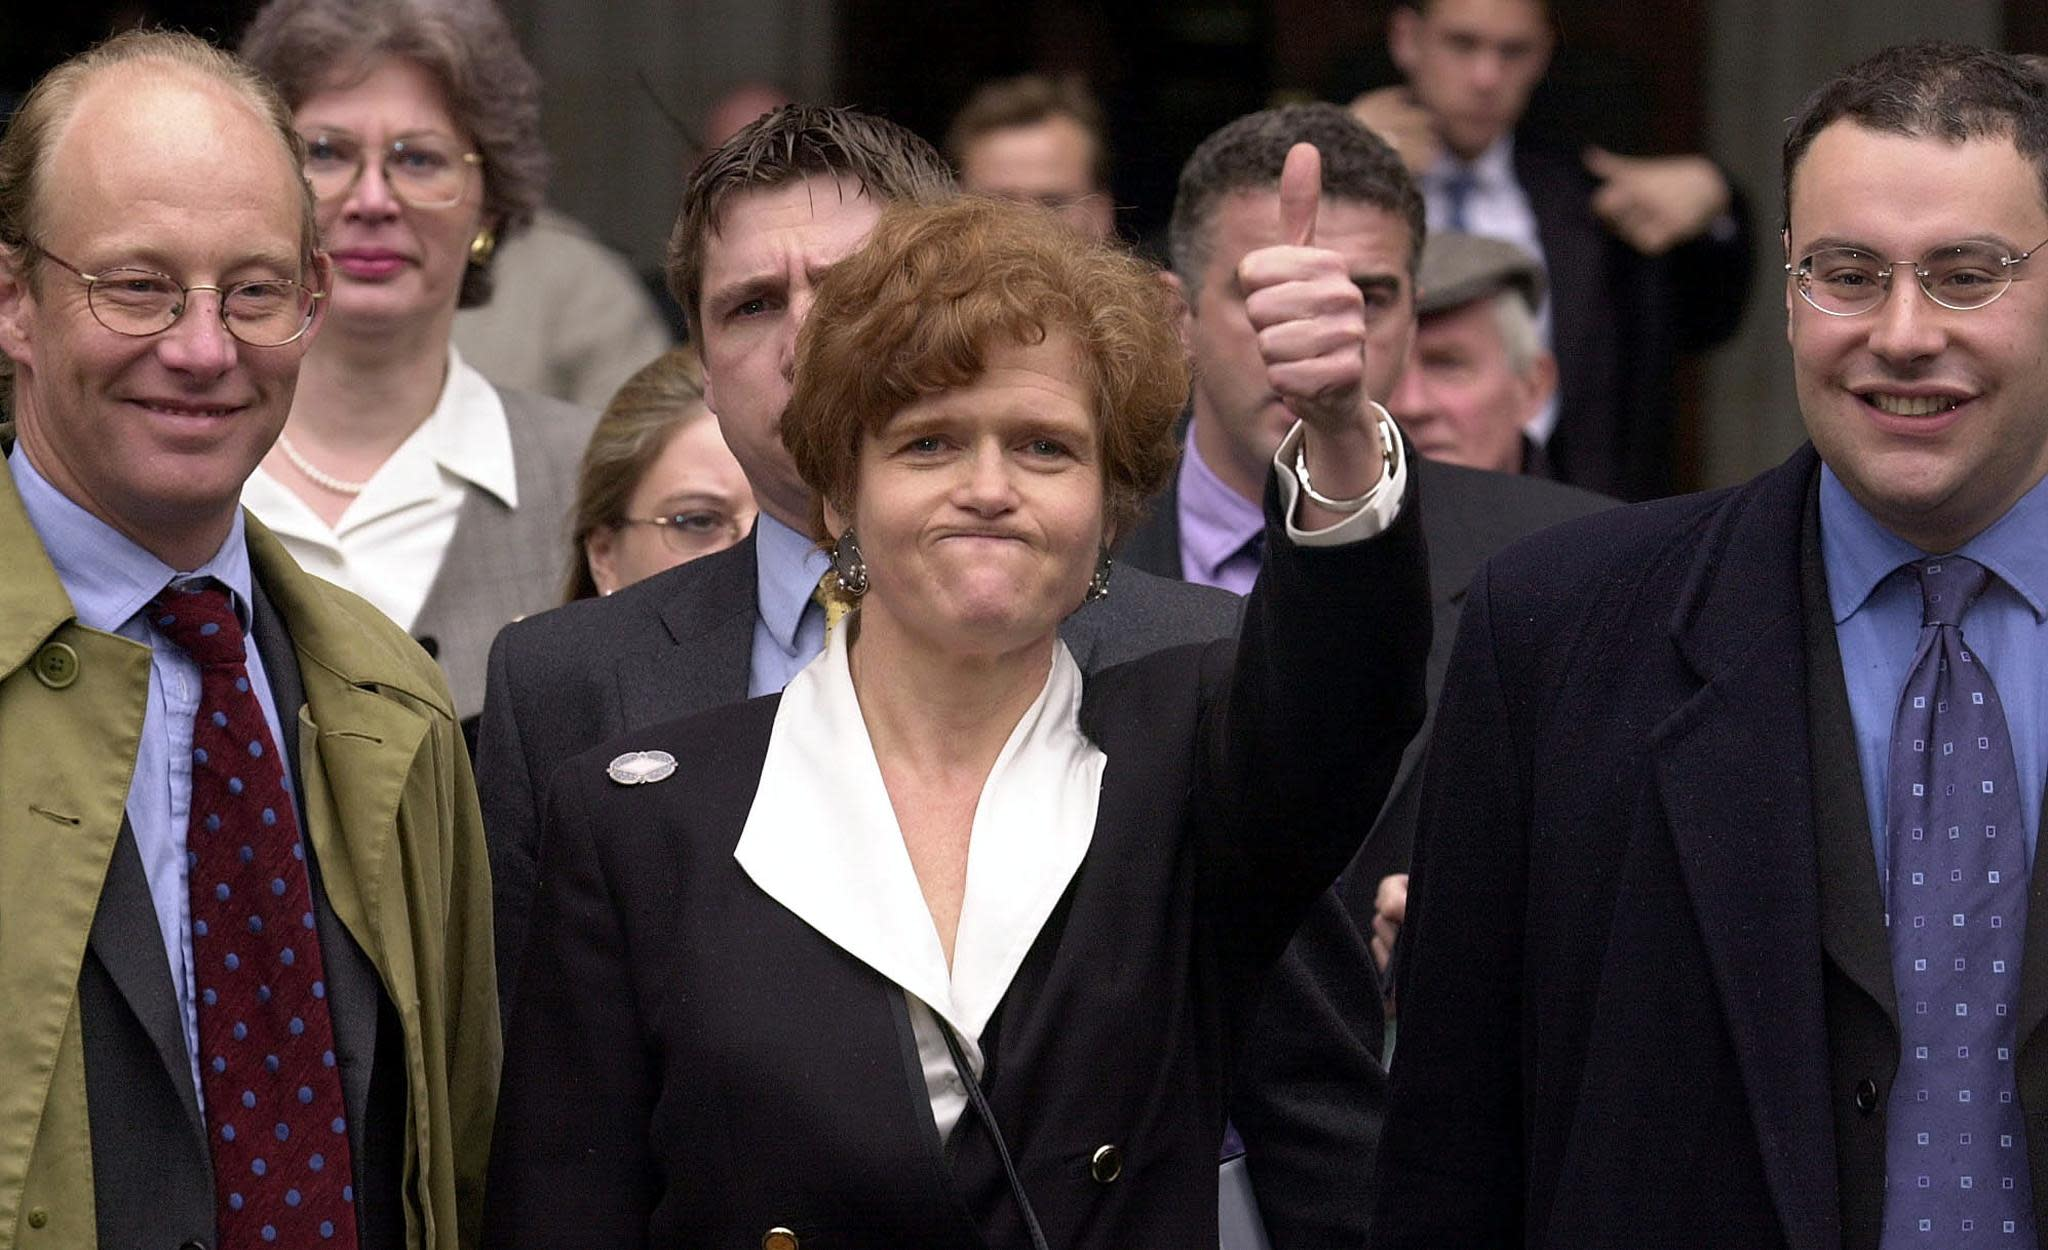 """Lipstadt had described Irving in her 1994 book as a """"Holocaust denier"""" for his claims that Jews were not systematically exterminated by the Nazis during the Second World War. (Martin Hayhow/AFP)"""